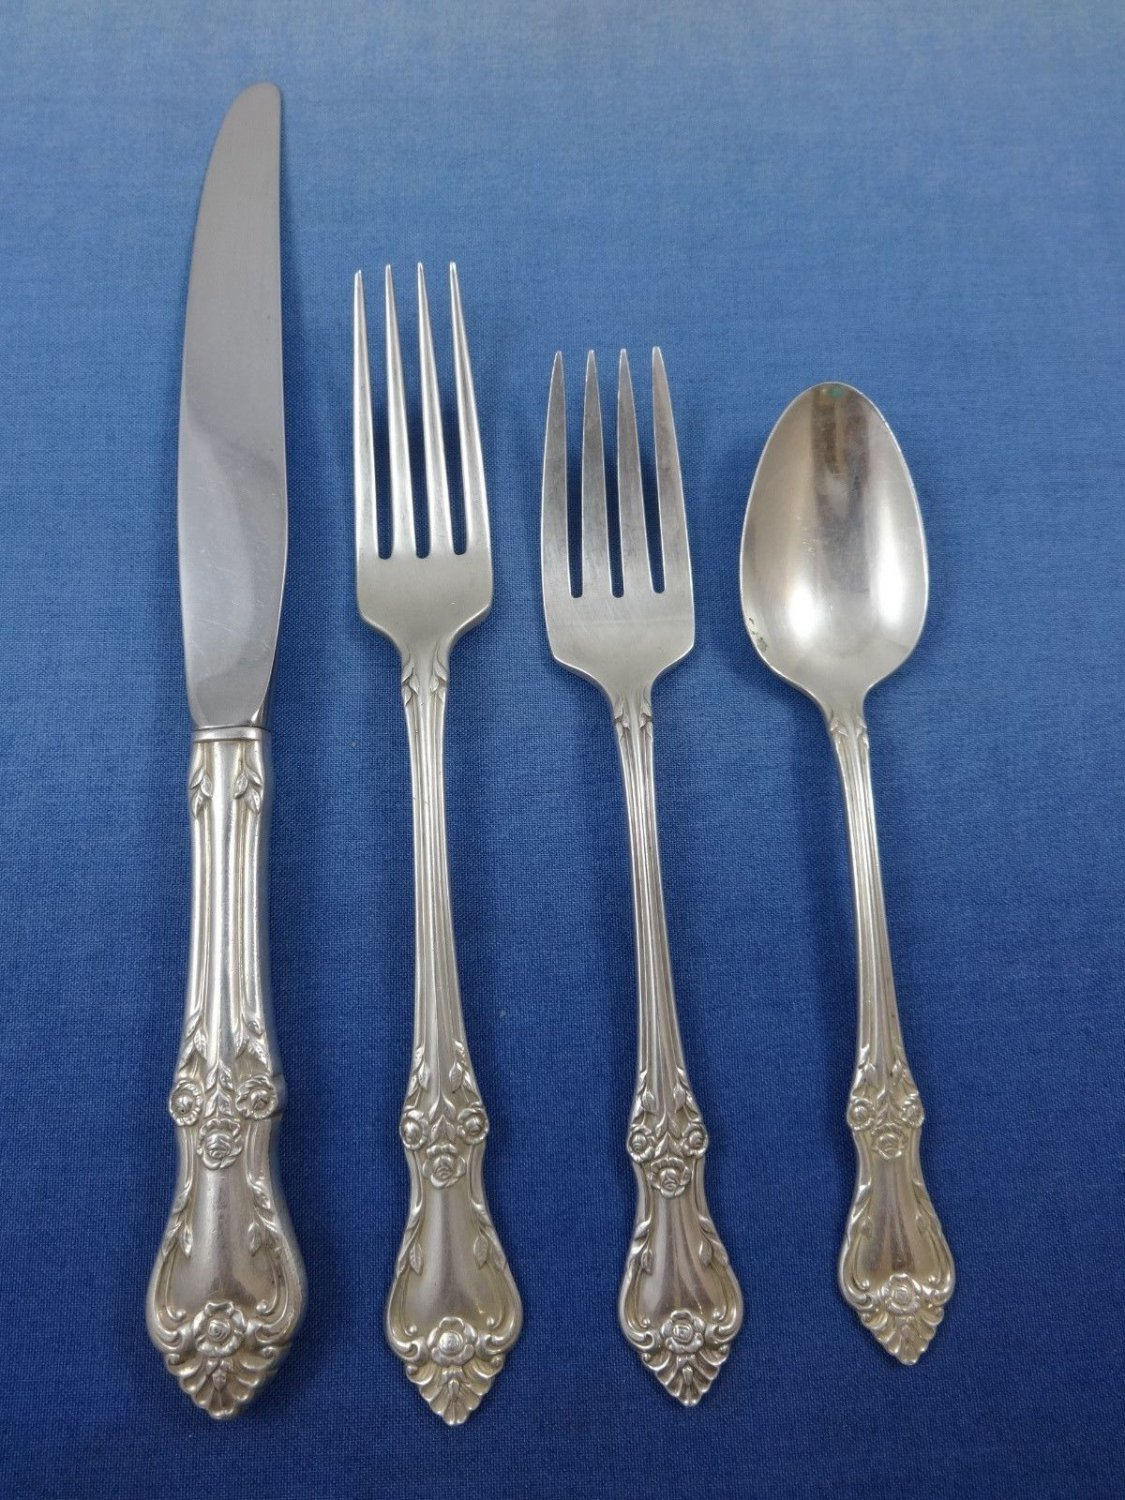 Afterglow by Oneida Sterling Silver Flatware Set For 8 Service 32 Pieces